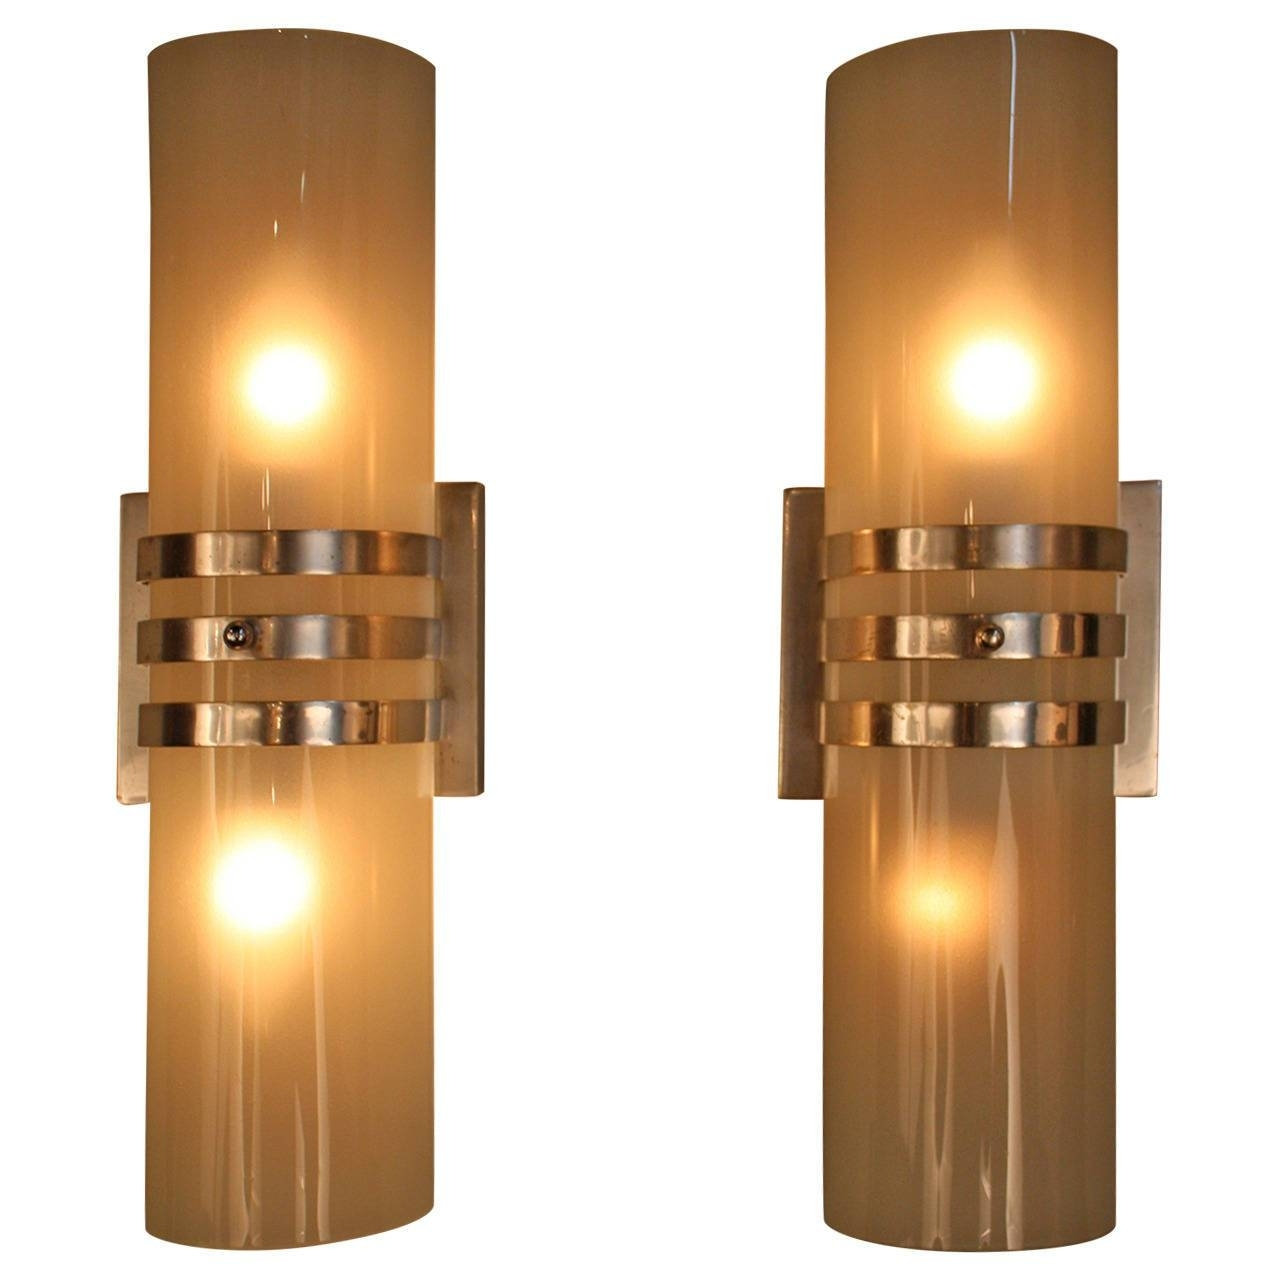 Well Known Wall Art Designs: Bathroom Art Deco Wall Sconces Light, Art Deco Regarding Art Deco Wall Sconces (View 12 of 15)